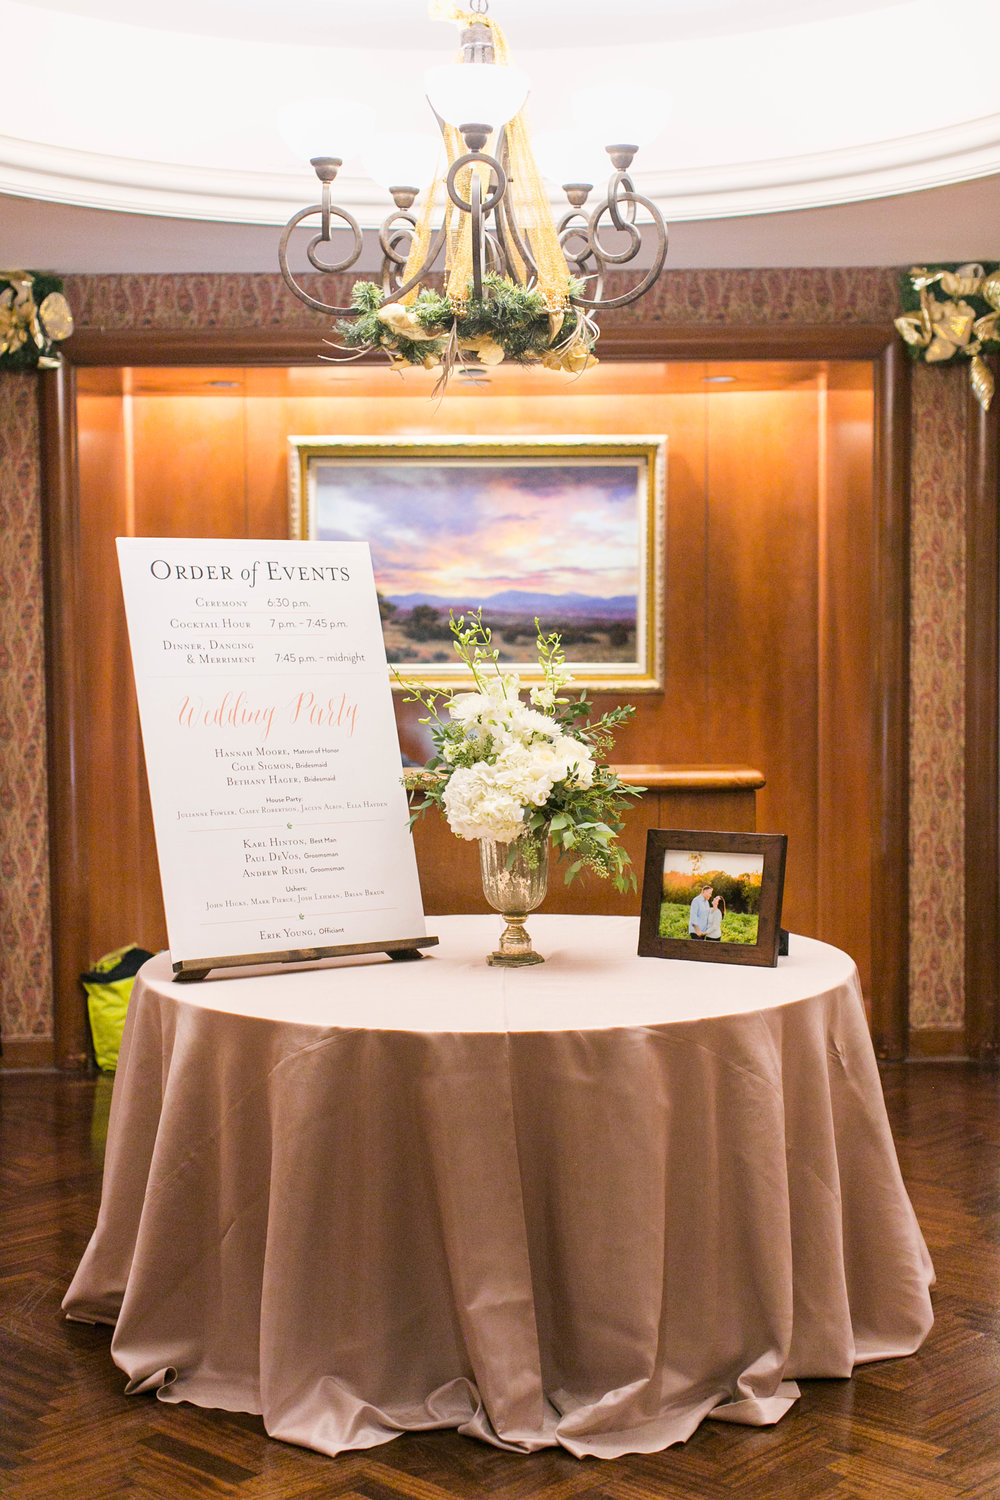 When people walked into the hall for the ceremony, they were greeted by this table with a poster-sized Order of Events, some flowers and a picture from our engagement shoot.